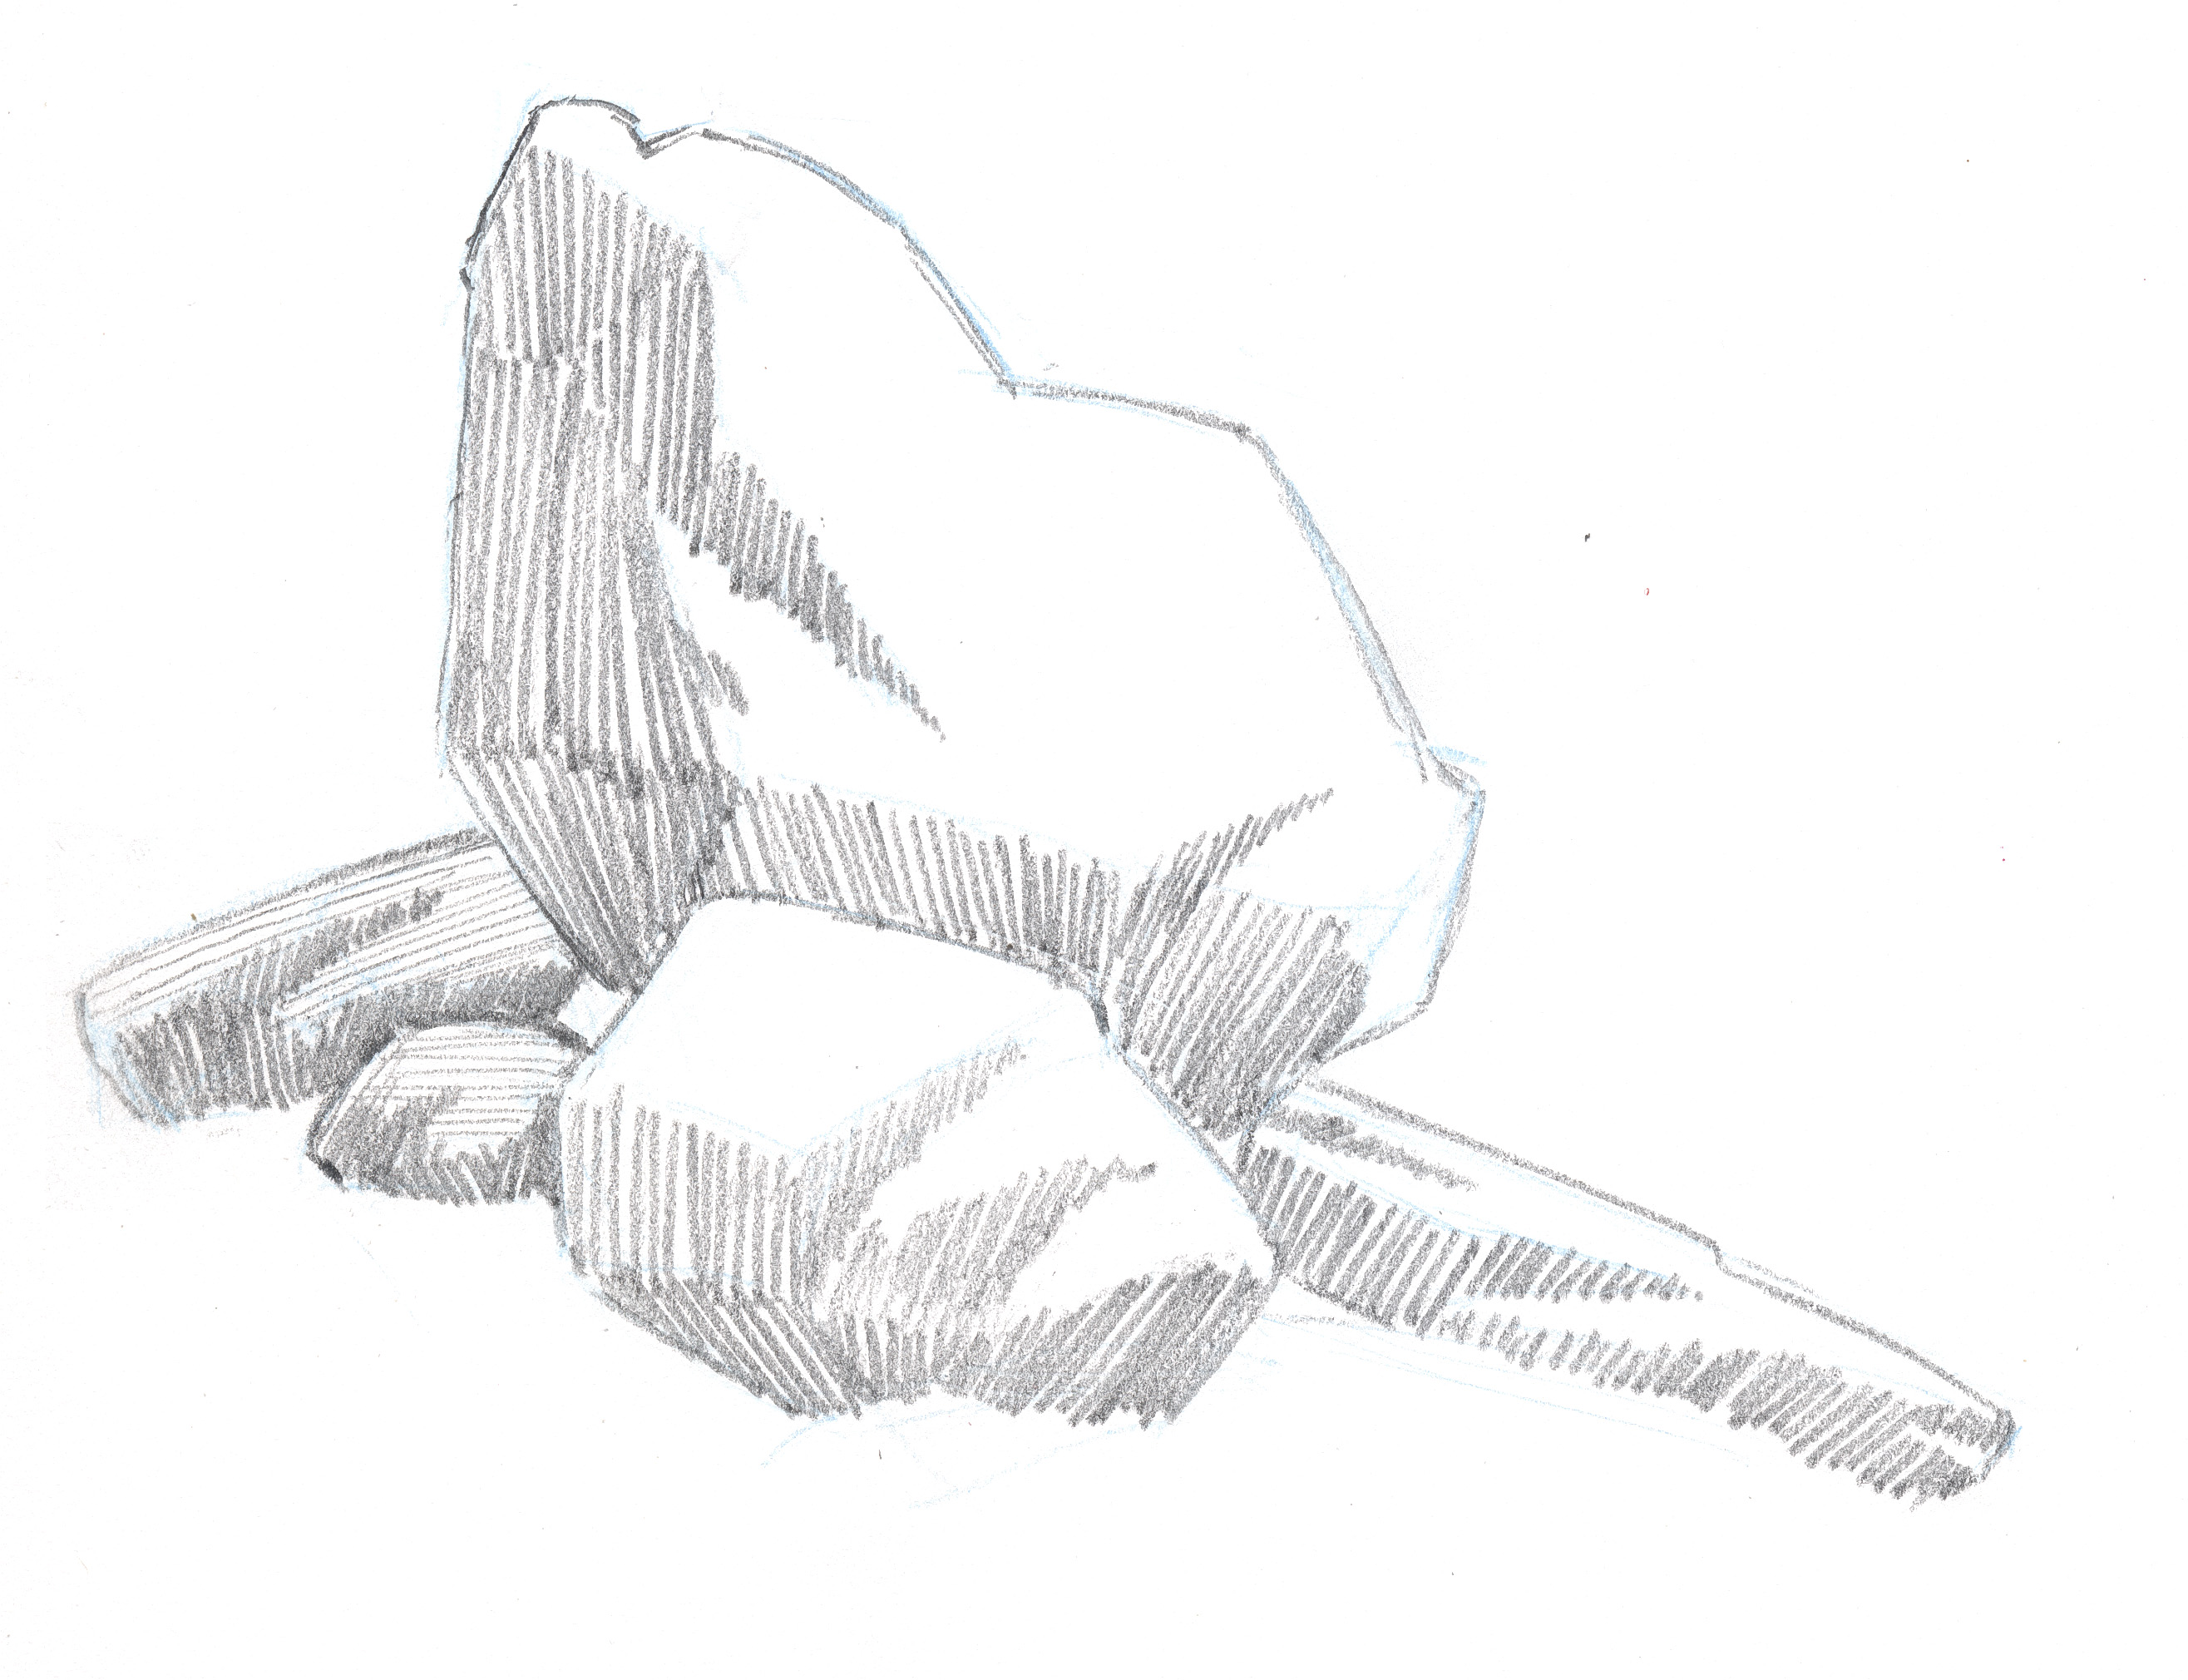 Draw textures for smooth and rough rocks in your landscape pencil drawings.